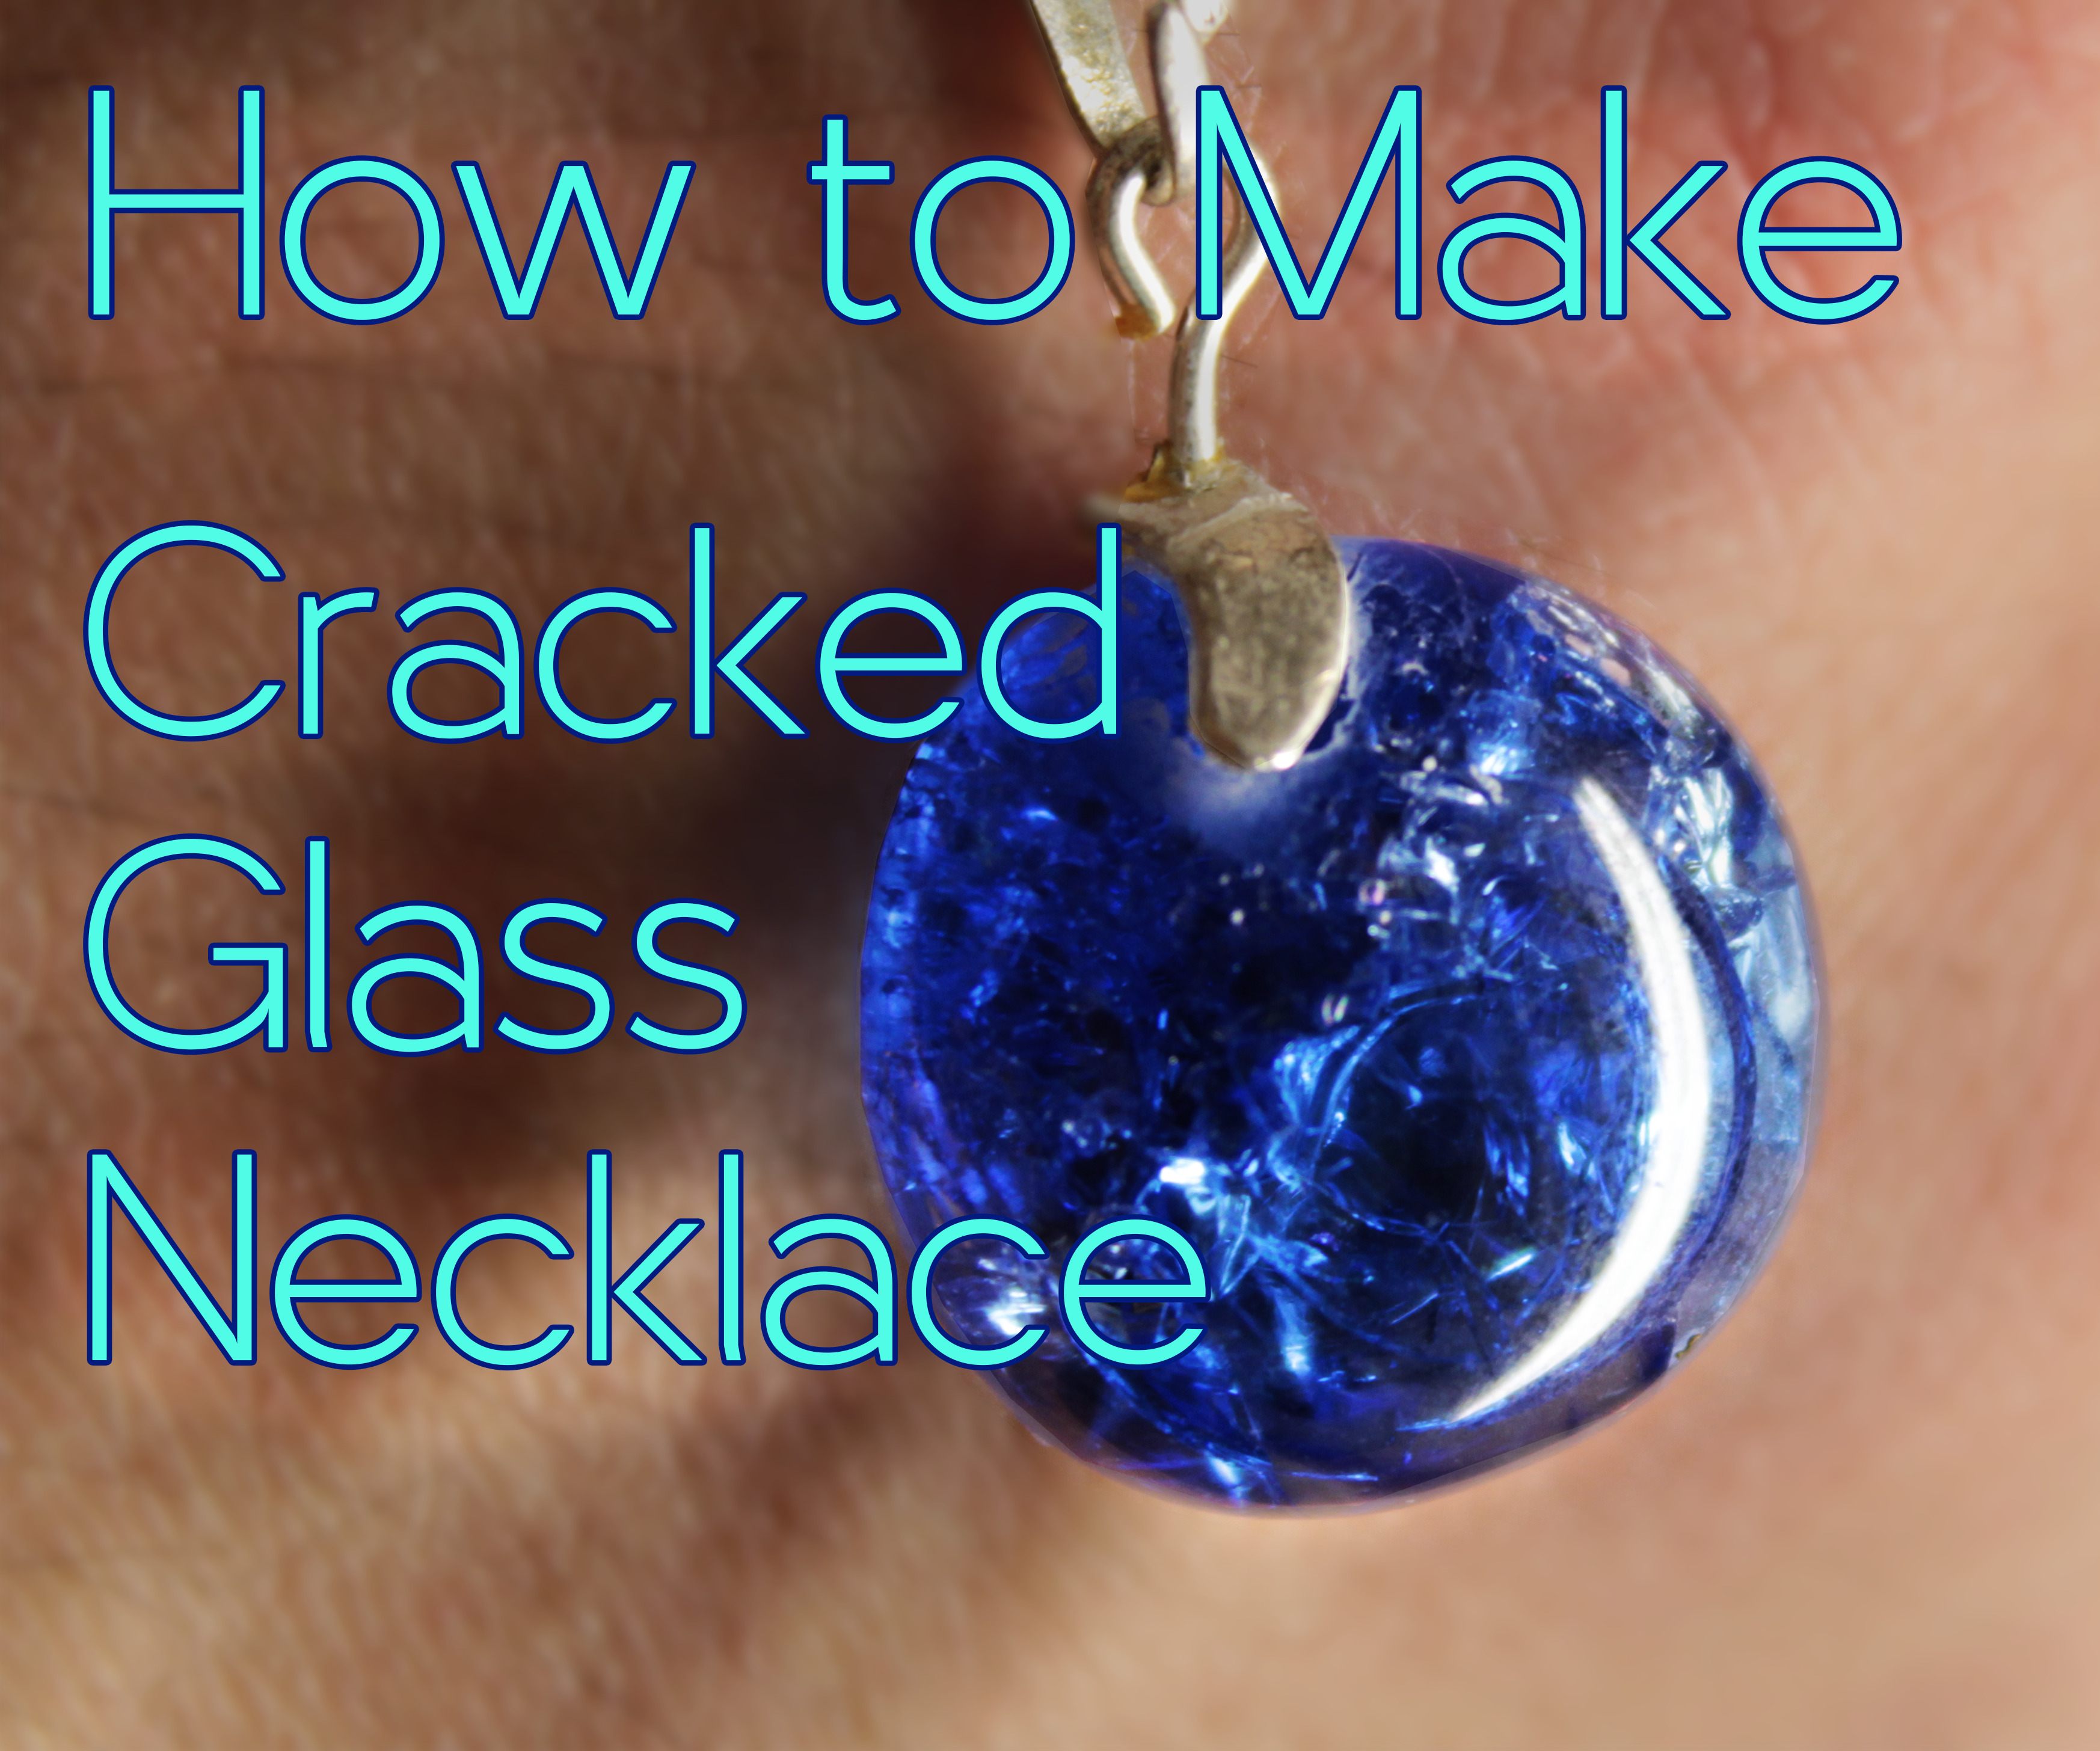 How to make Cracked Glass Necklace